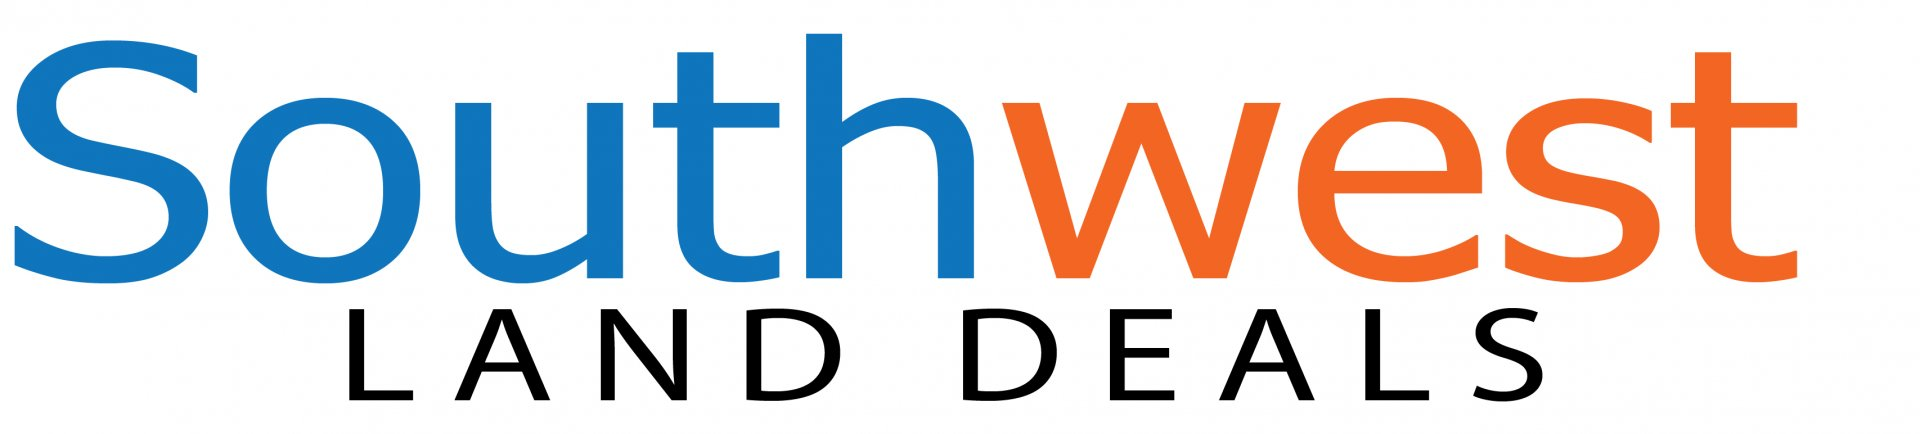 SouthWest Land Deals logo